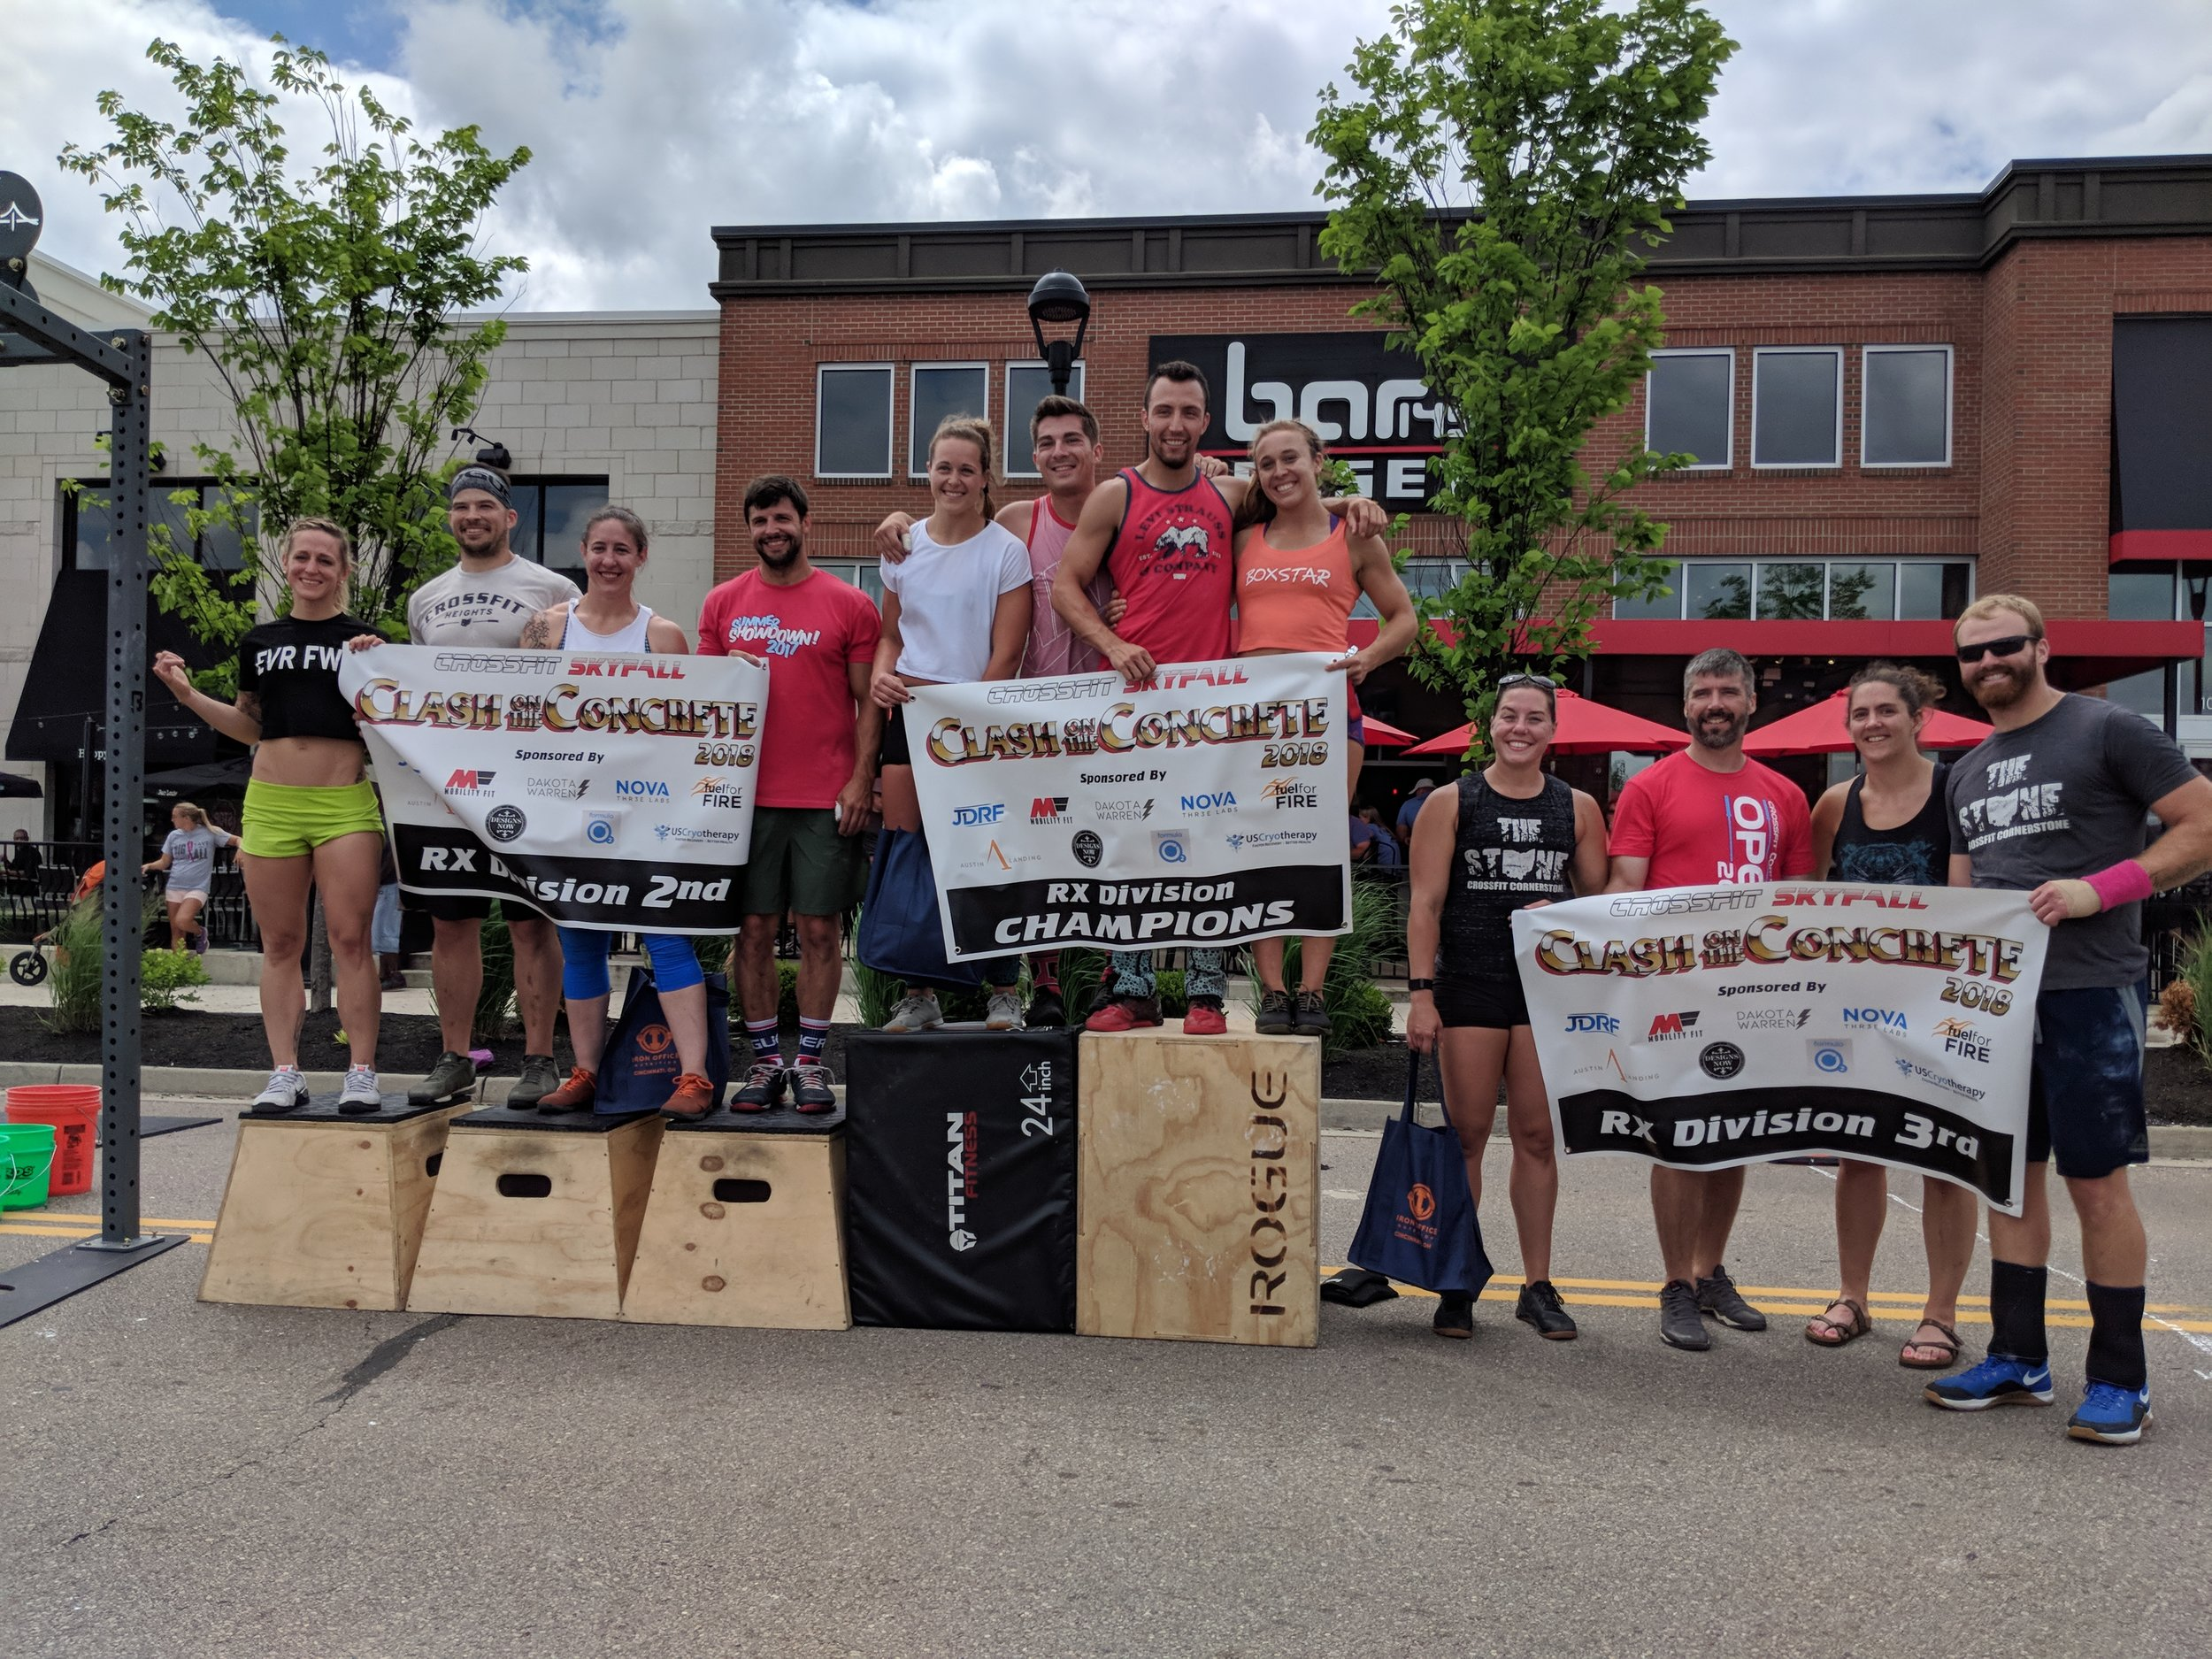 Congrats to Ashley, Stephen, Megan and Matt for taking 2nd place overall in the Rx division over the weekend. Great teamwork led them to the podium!  Friday we will be having a diaper WOD for Derek, Katie and their daughter. Bring a pack of diapers if you like. We will be grilling out chicken, burgers and hotdogs after the 5:30 workout. Bring a side dish to share and a beverage of your choice for yourself.